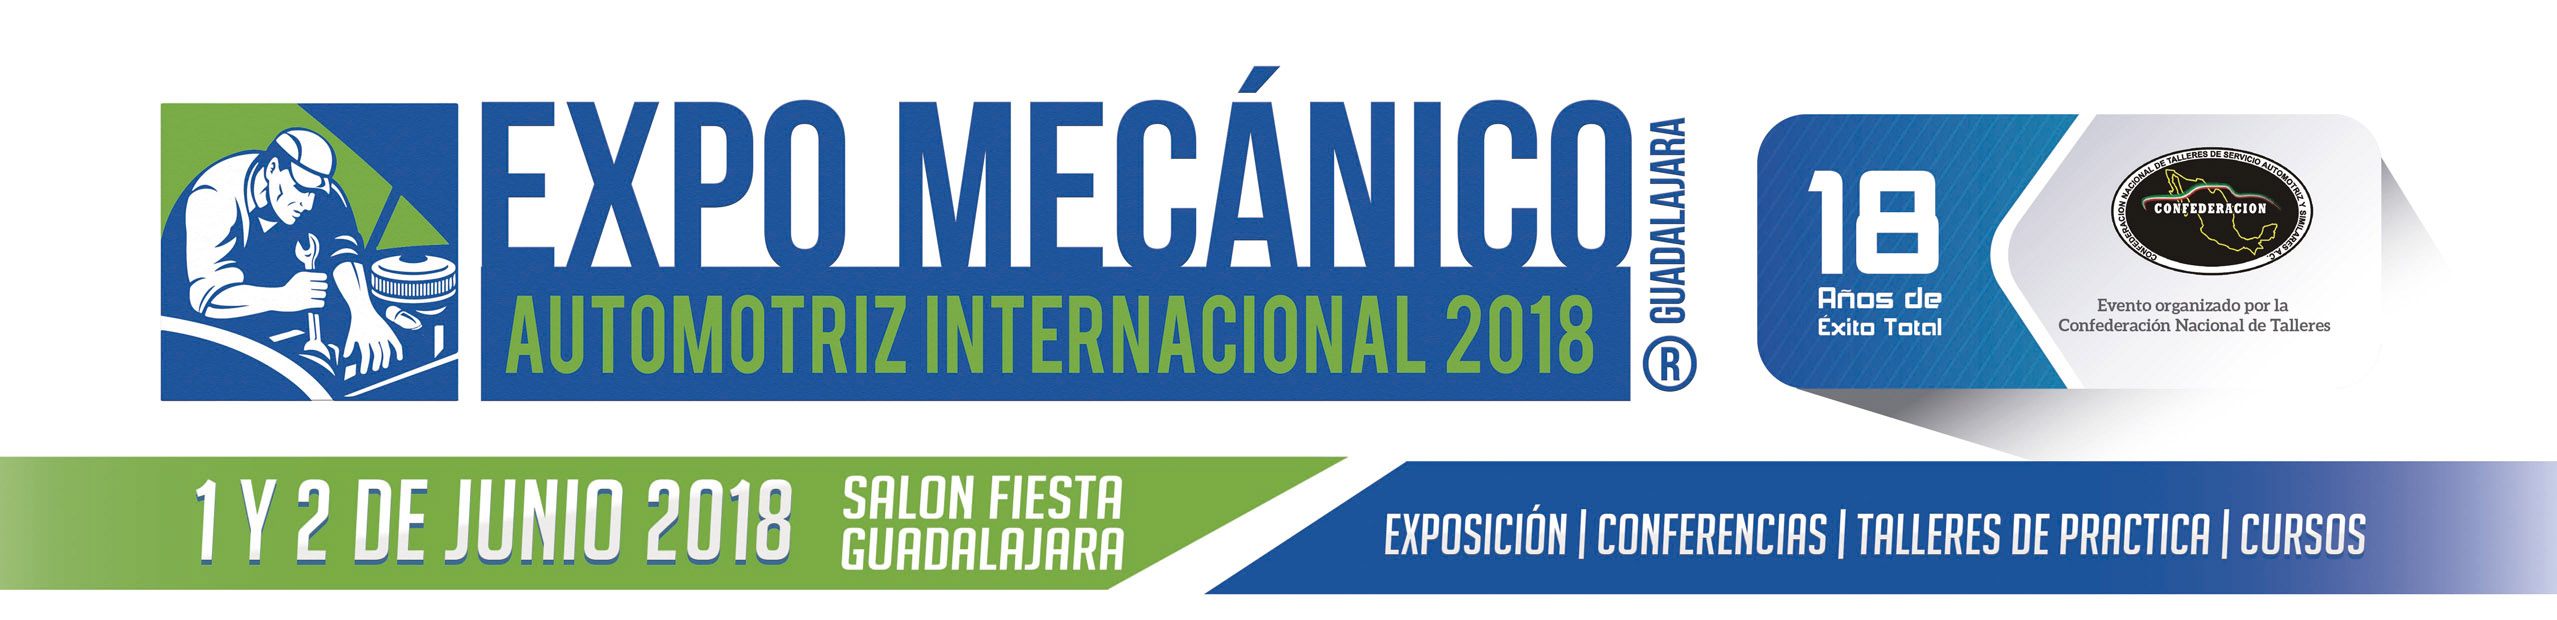 Poster Expo Mecanico - GLOBSPOT | white label GPS tracker and fleet management GPS tracking software